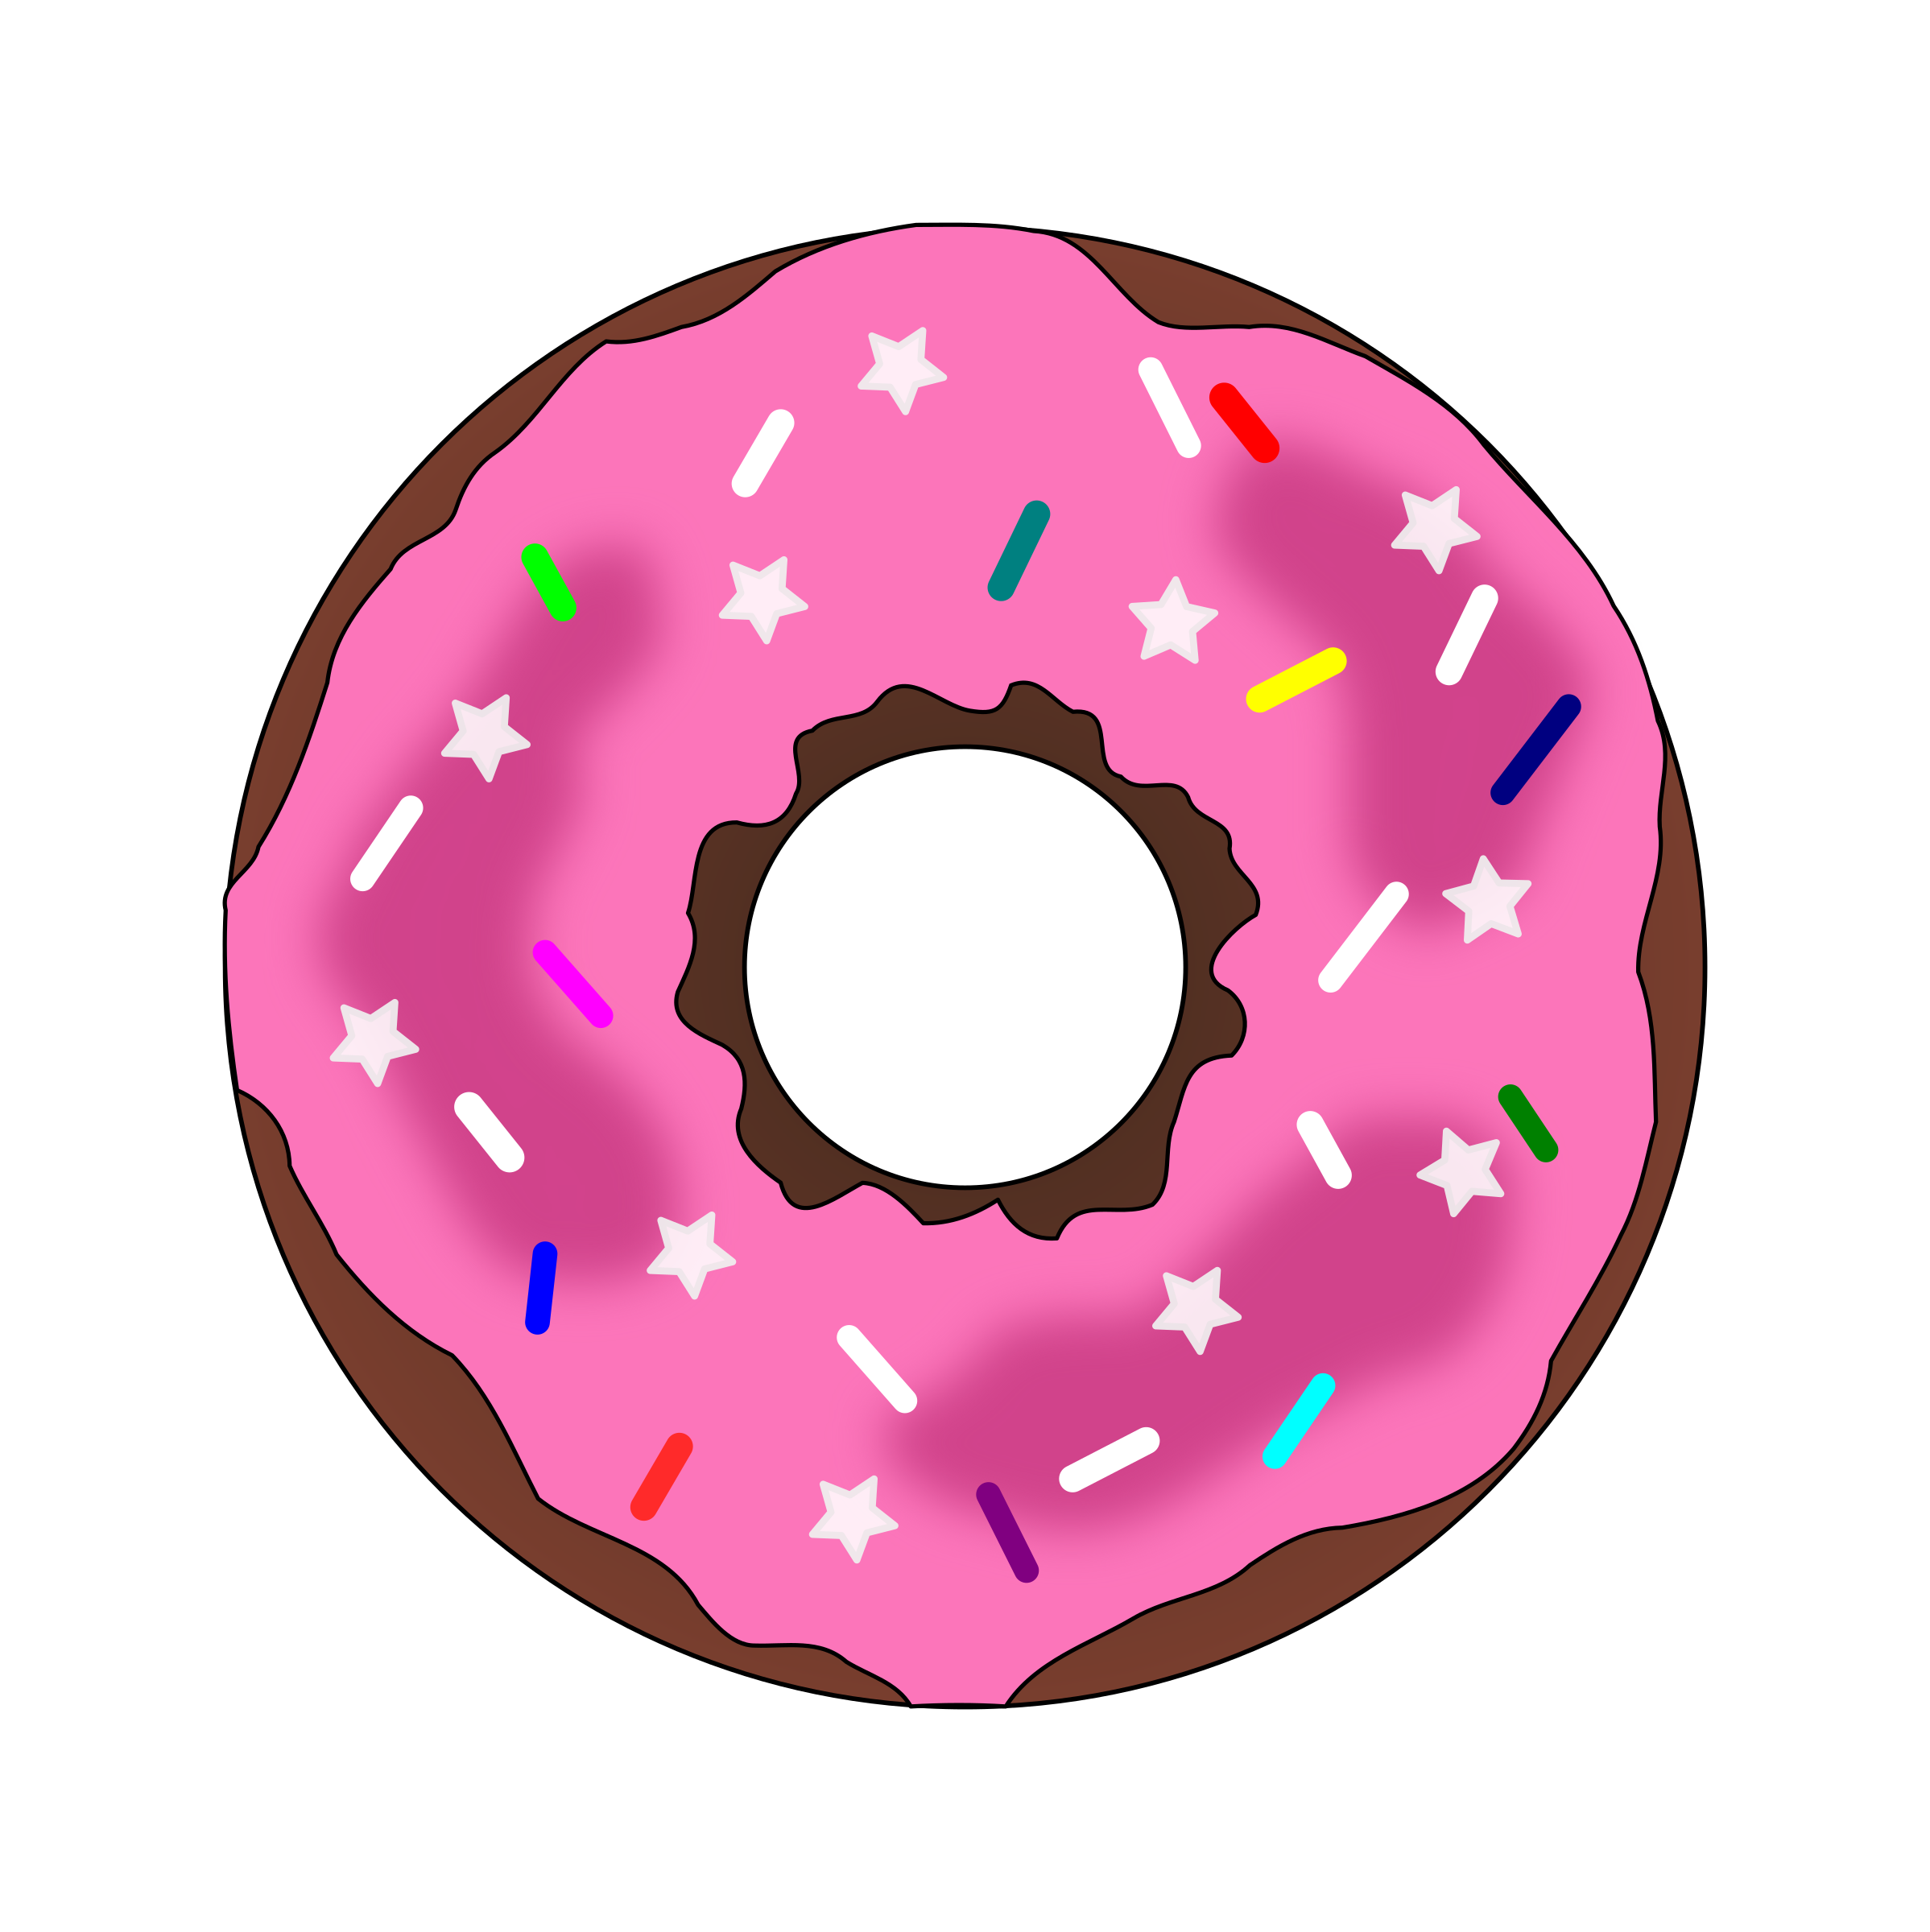 Donut clipart twist. Stars and sprinkles big